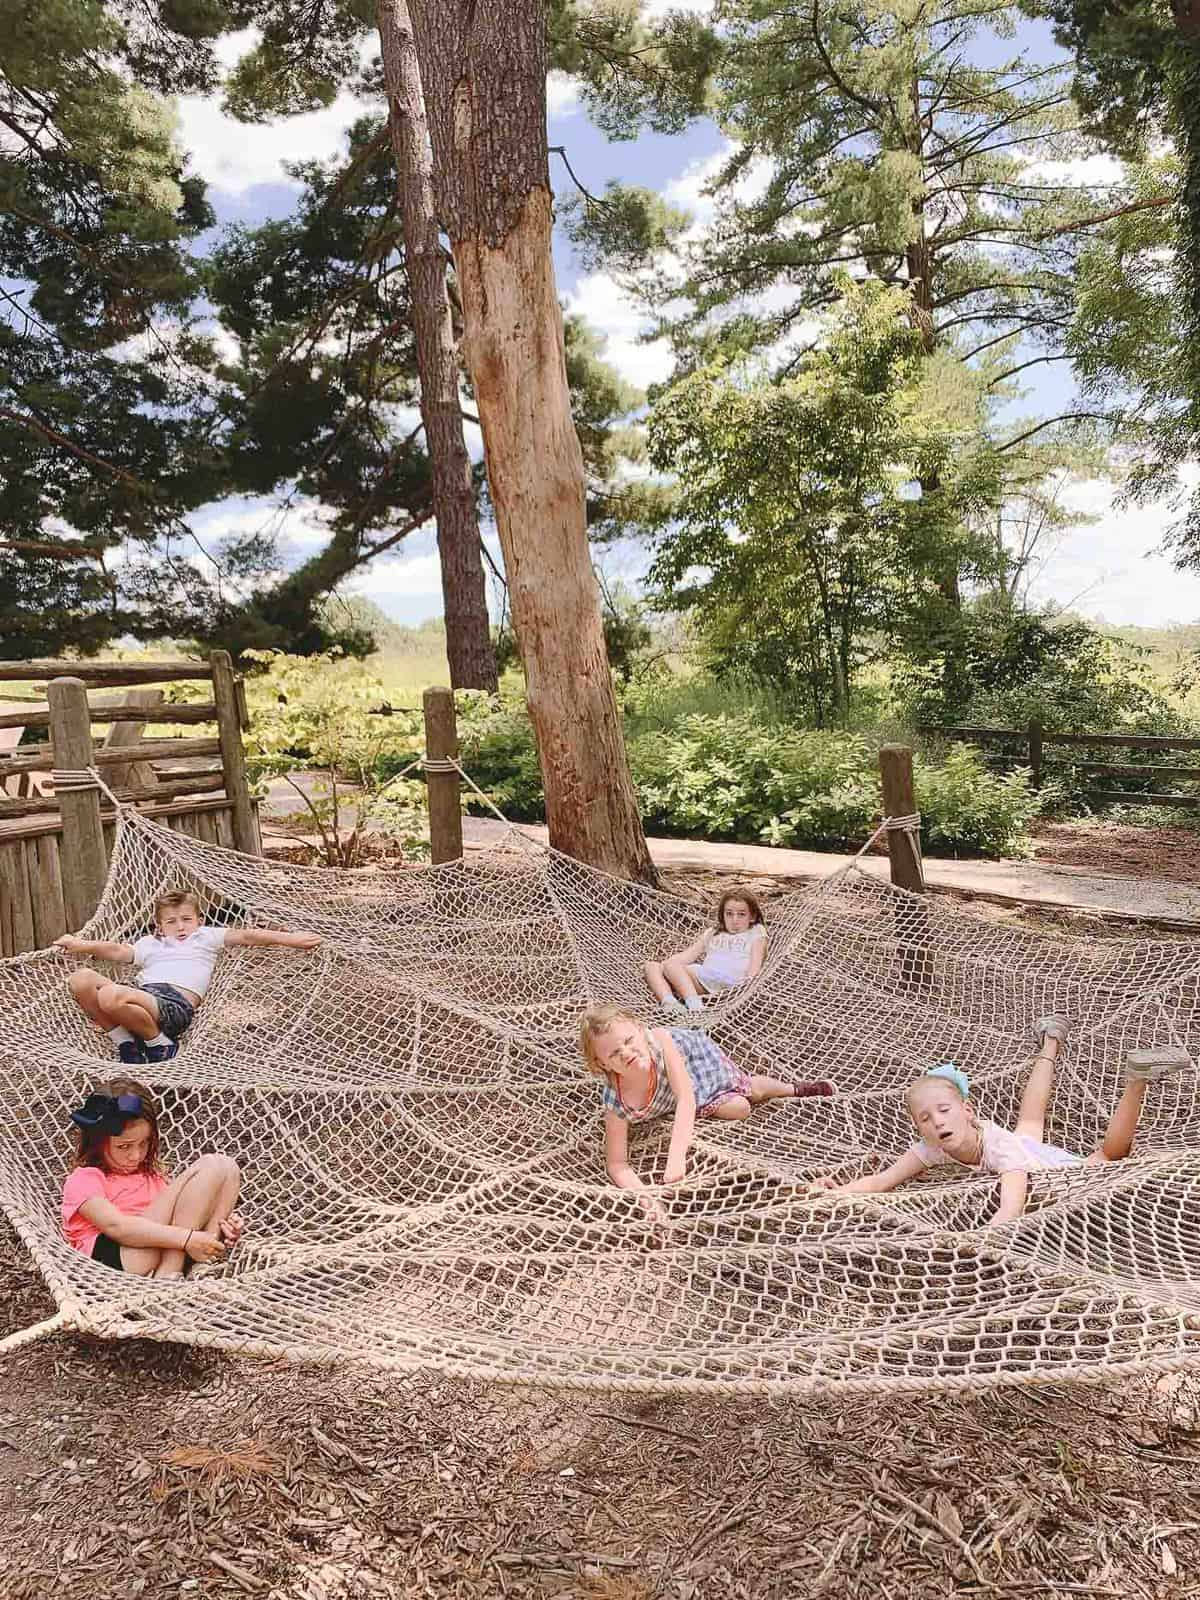 Giant play spider web for kids in St. Louis